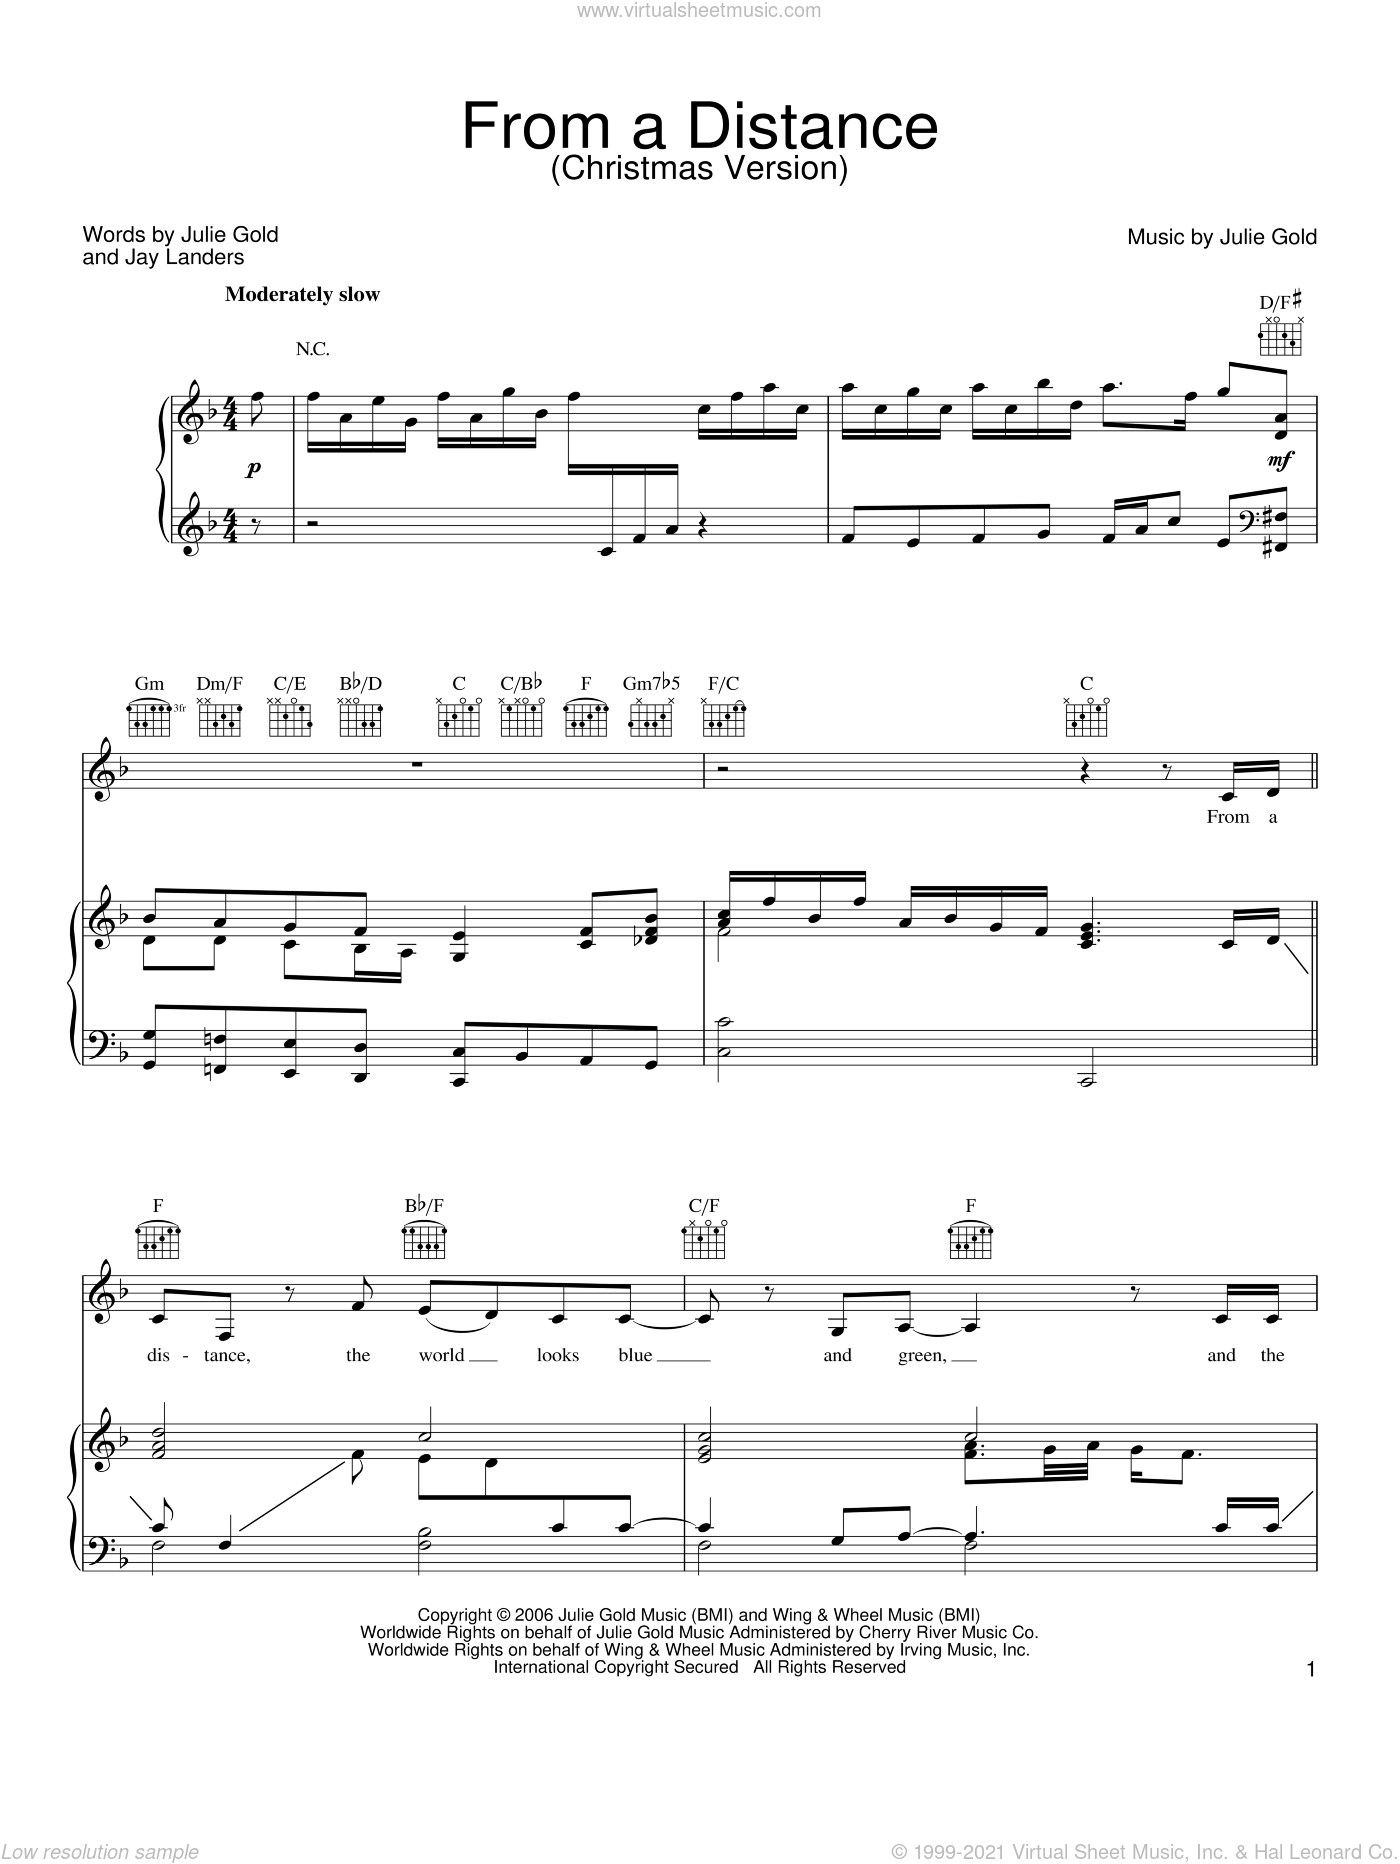 From A Distance (Christmas Version) sheet music for voice, piano or guitar by Bette Midler, Jay Landers and Julie Gold, intermediate skill level